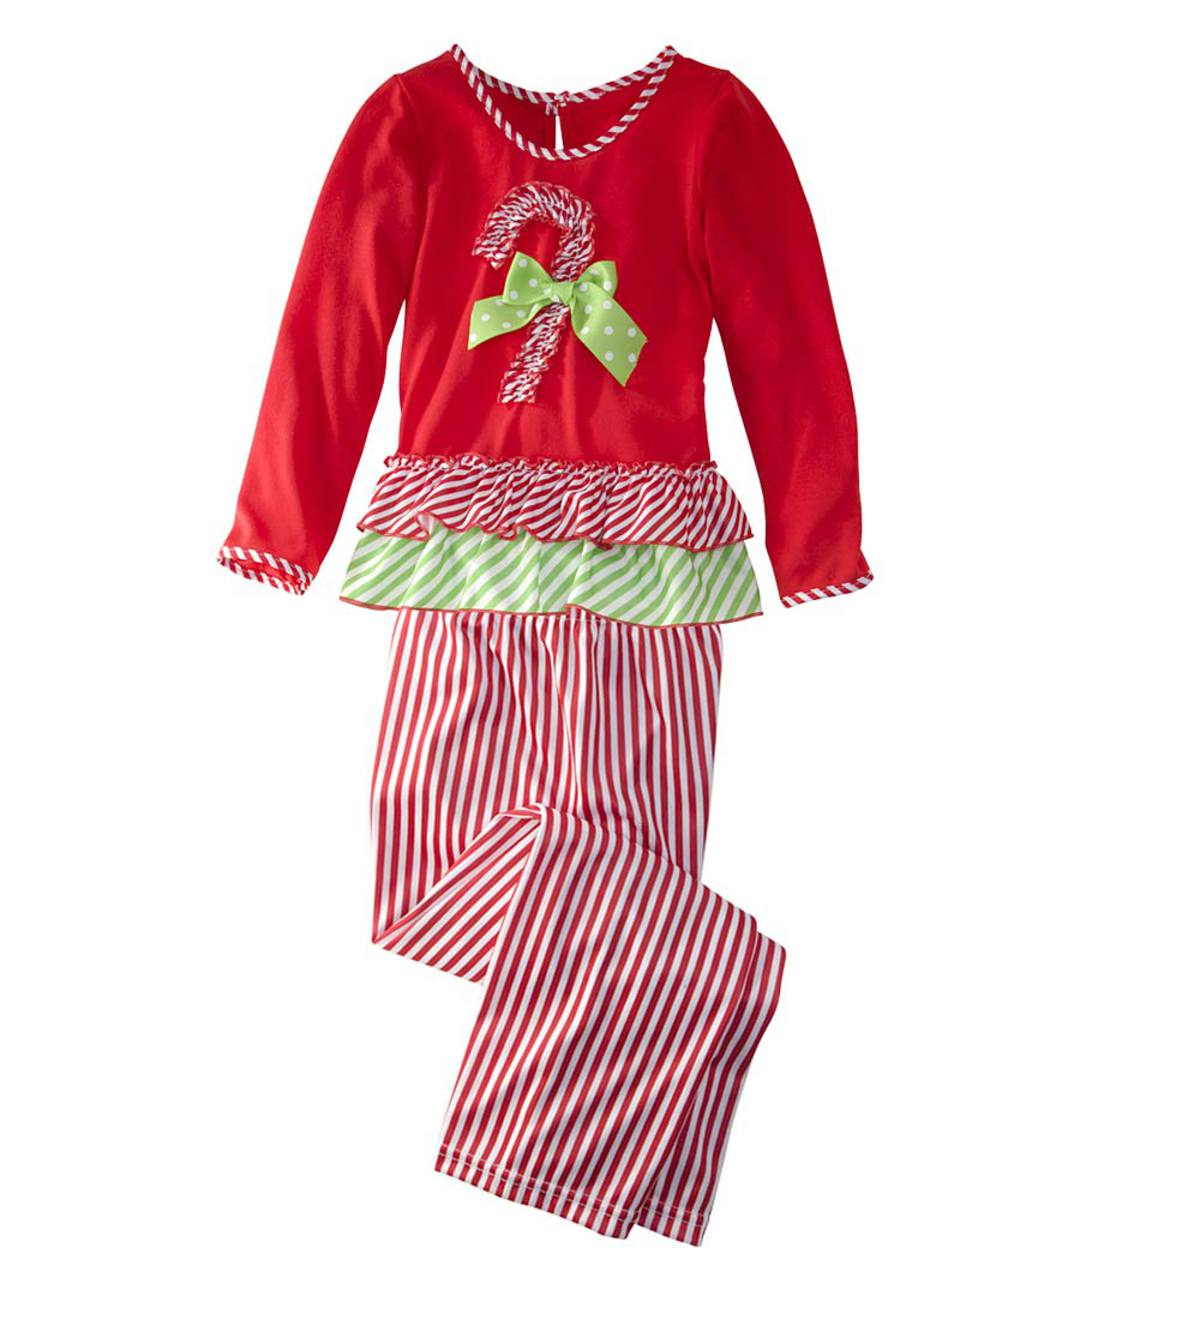 Stripe Candy Cane Pajamas - Multi - 5